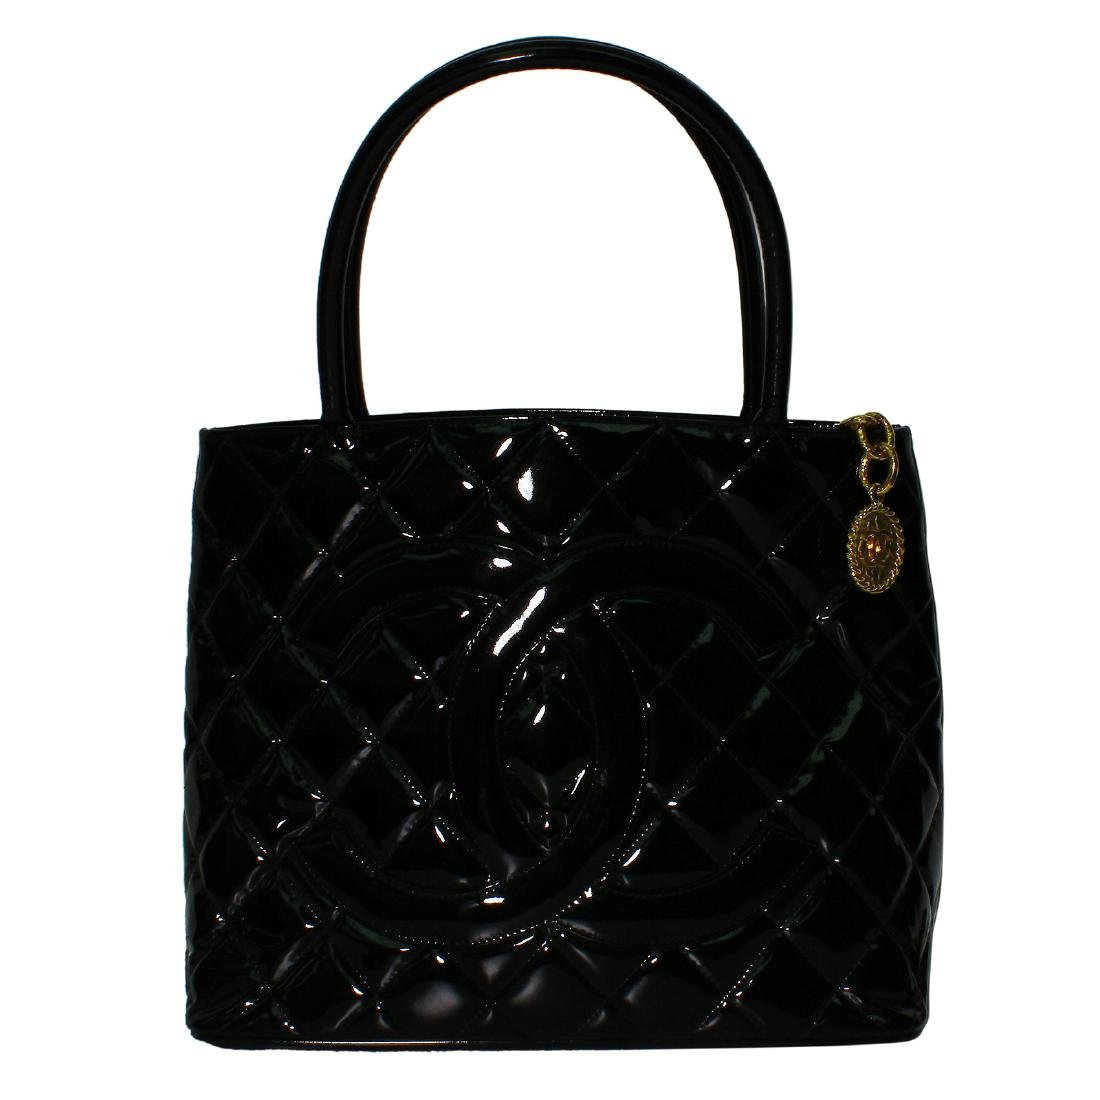 Chanel Quilted Black Patent Leather Shoulder Bag